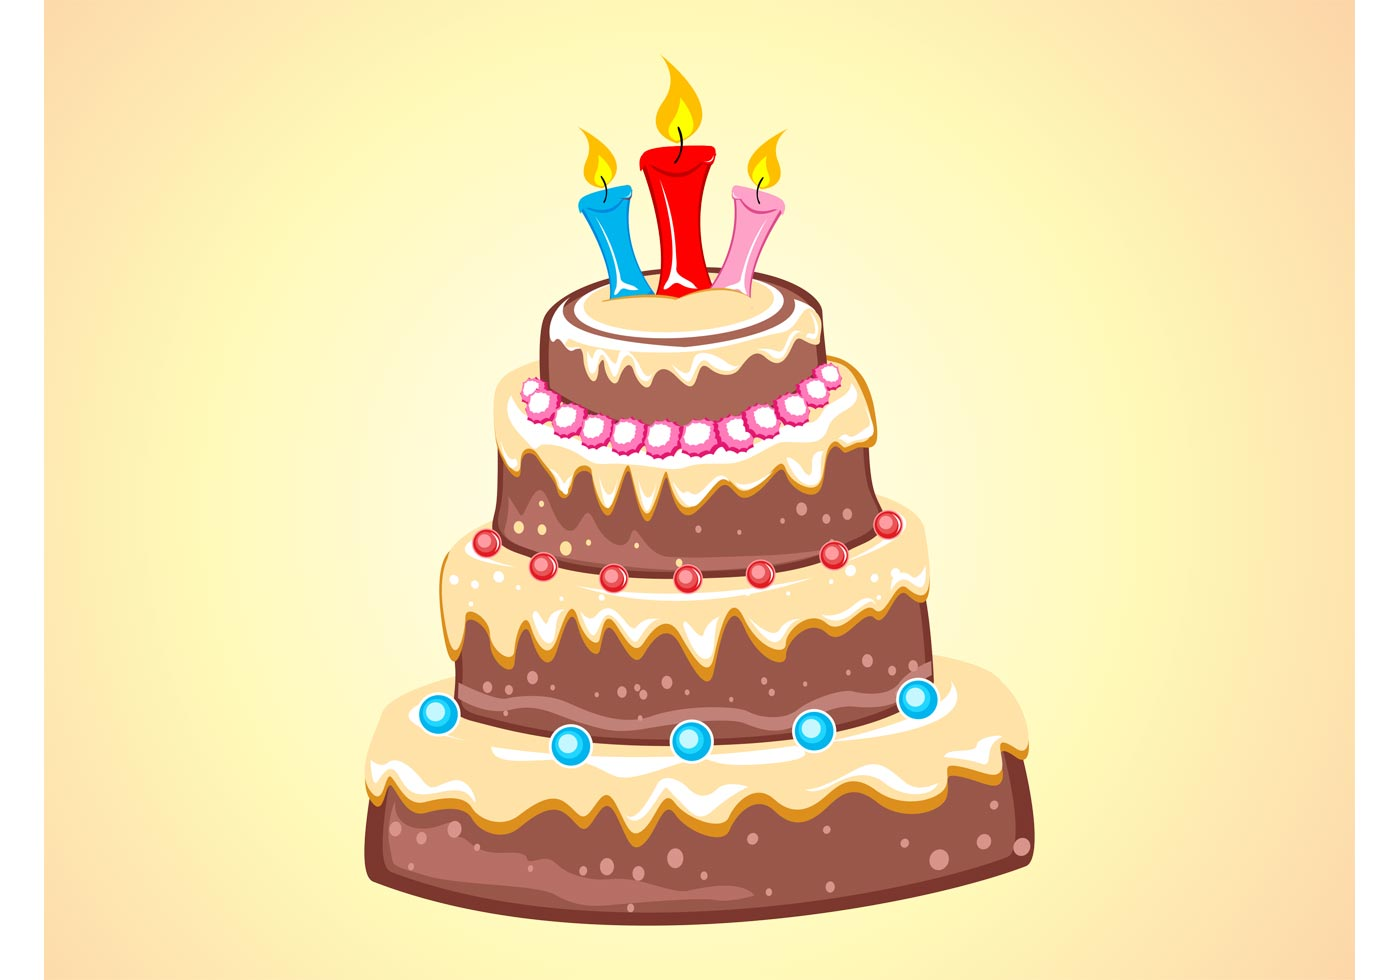 Cake Recipes Download: Download Free Vector Art, Stock Graphics